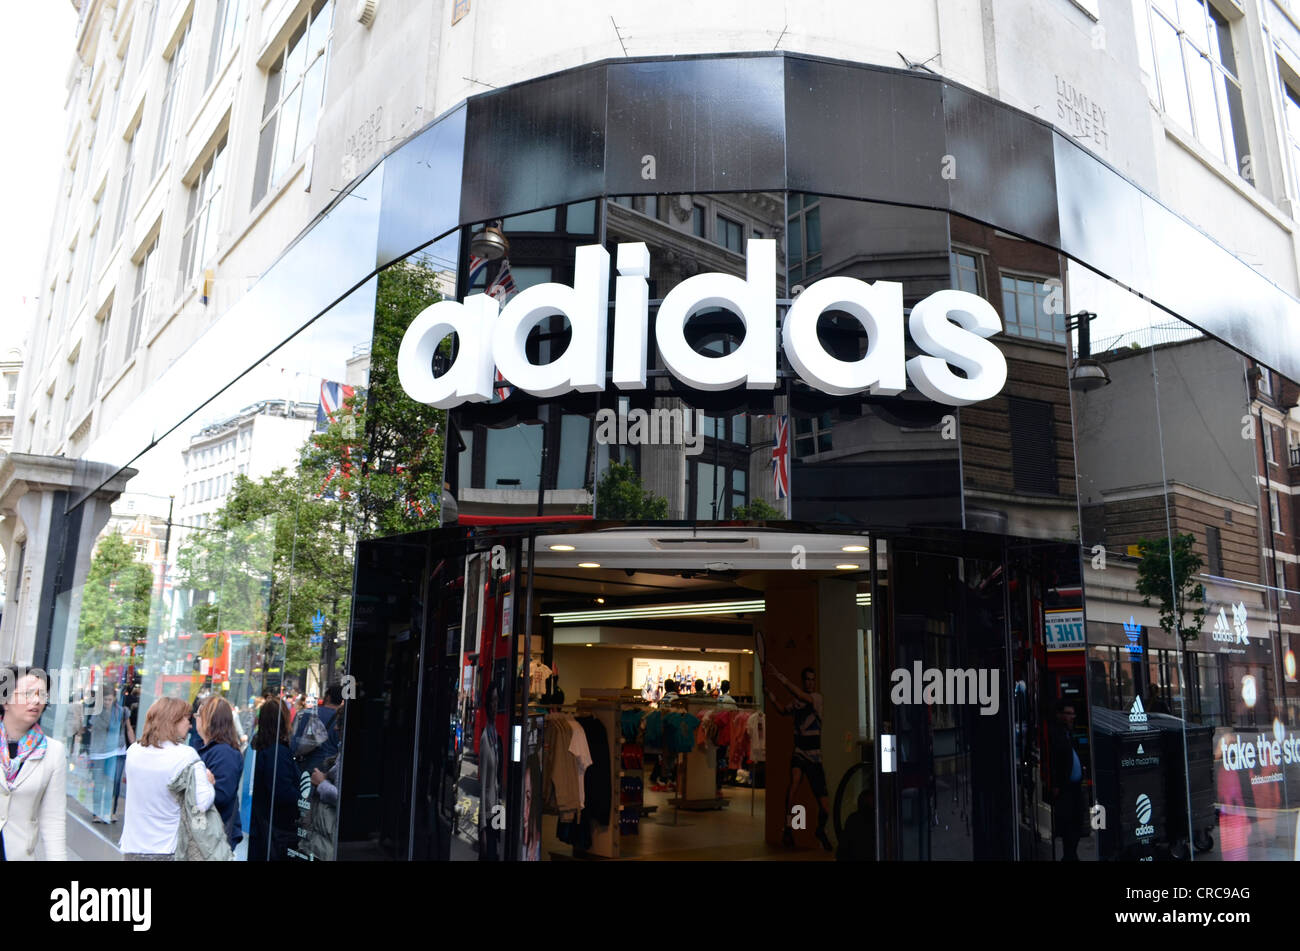 adidas-store-front-oxford-street-CRC9AG.jpg